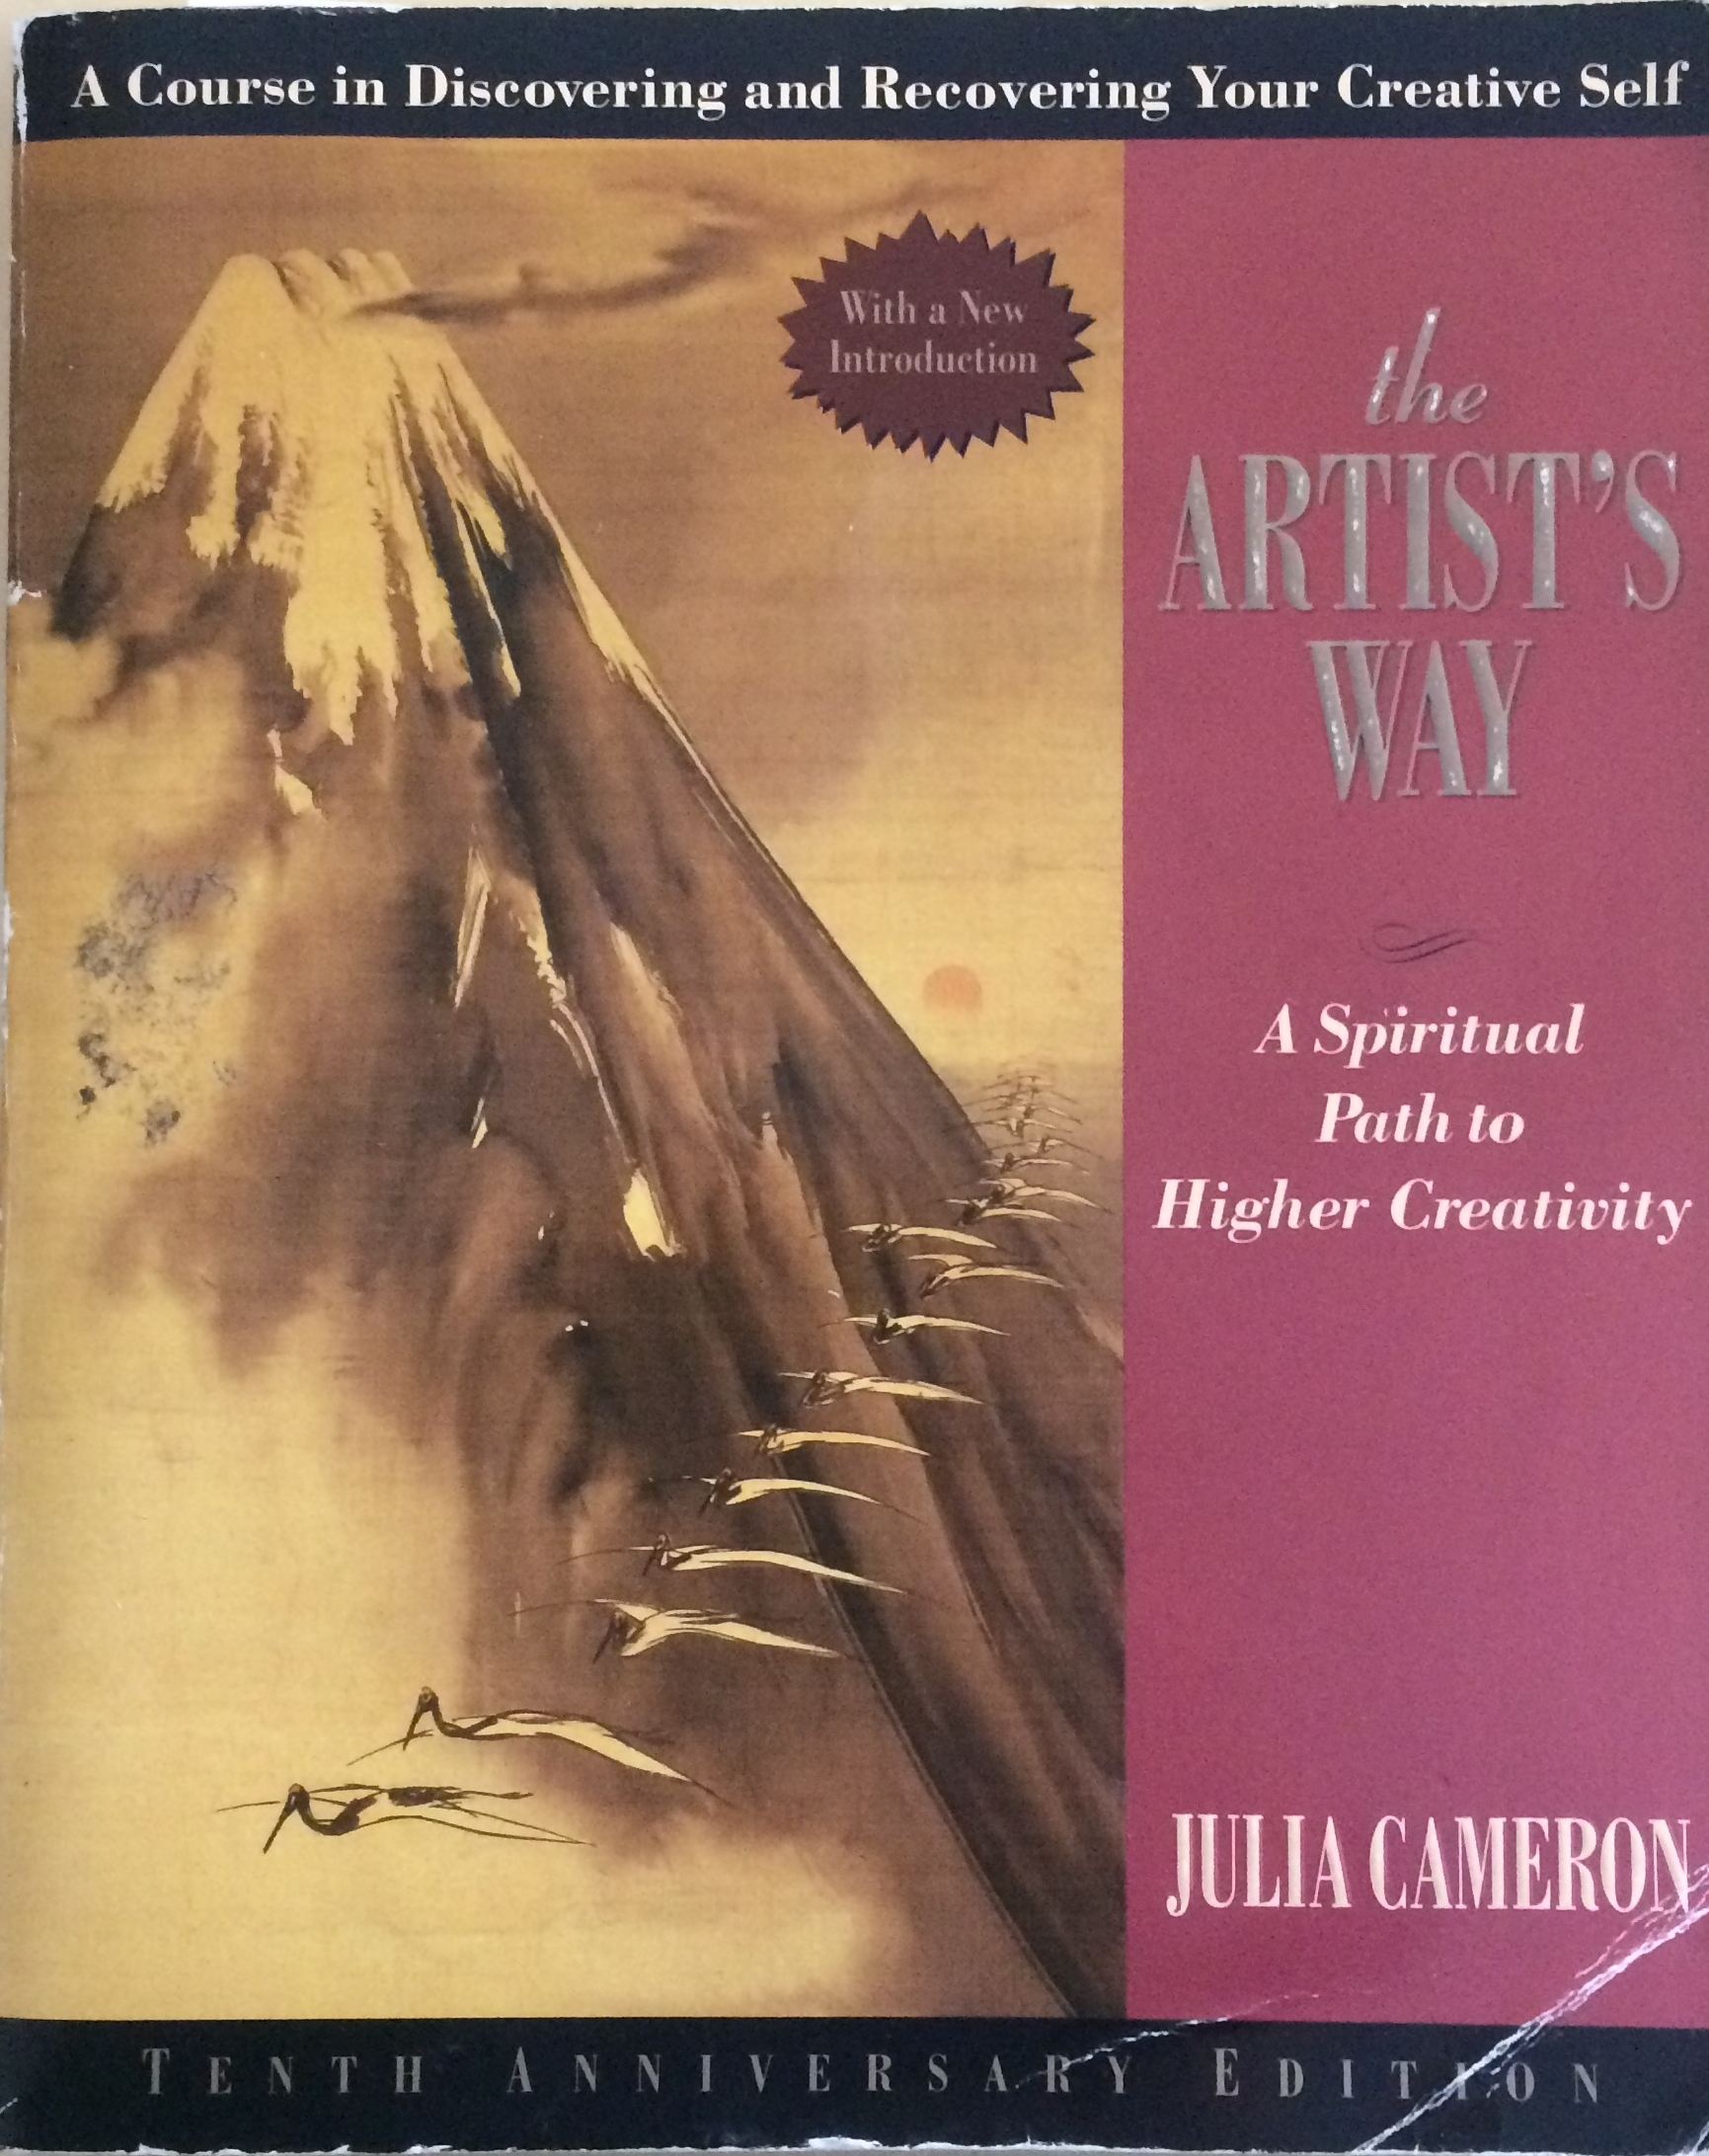 The artists way by julia cameron dan dzombak for those who arent familiar with the artists way the book is structured as a 12 week program to free your inner creativity boost your creative output solutioingenieria Choice Image